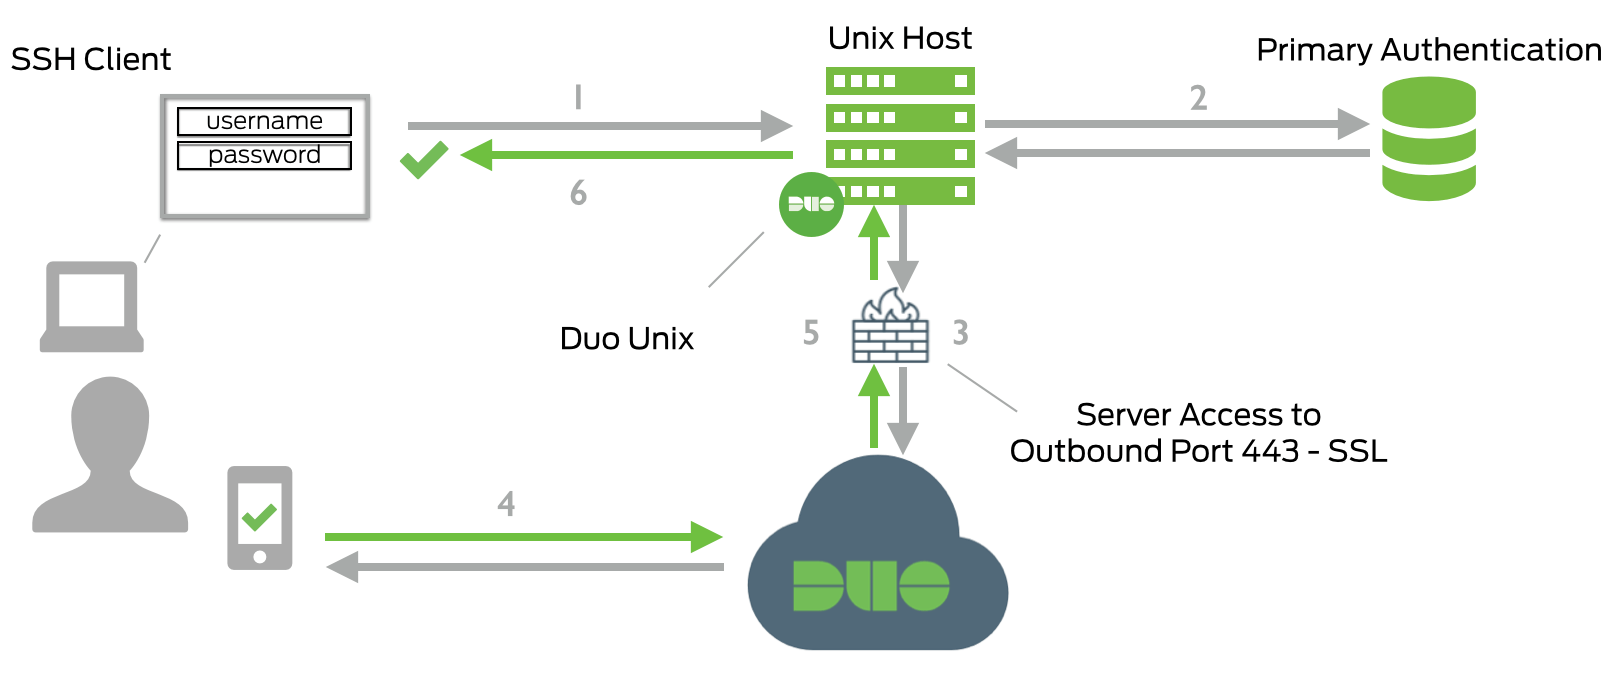 Duo Unix - Two-Factor Authentication for SSH | Duo Security